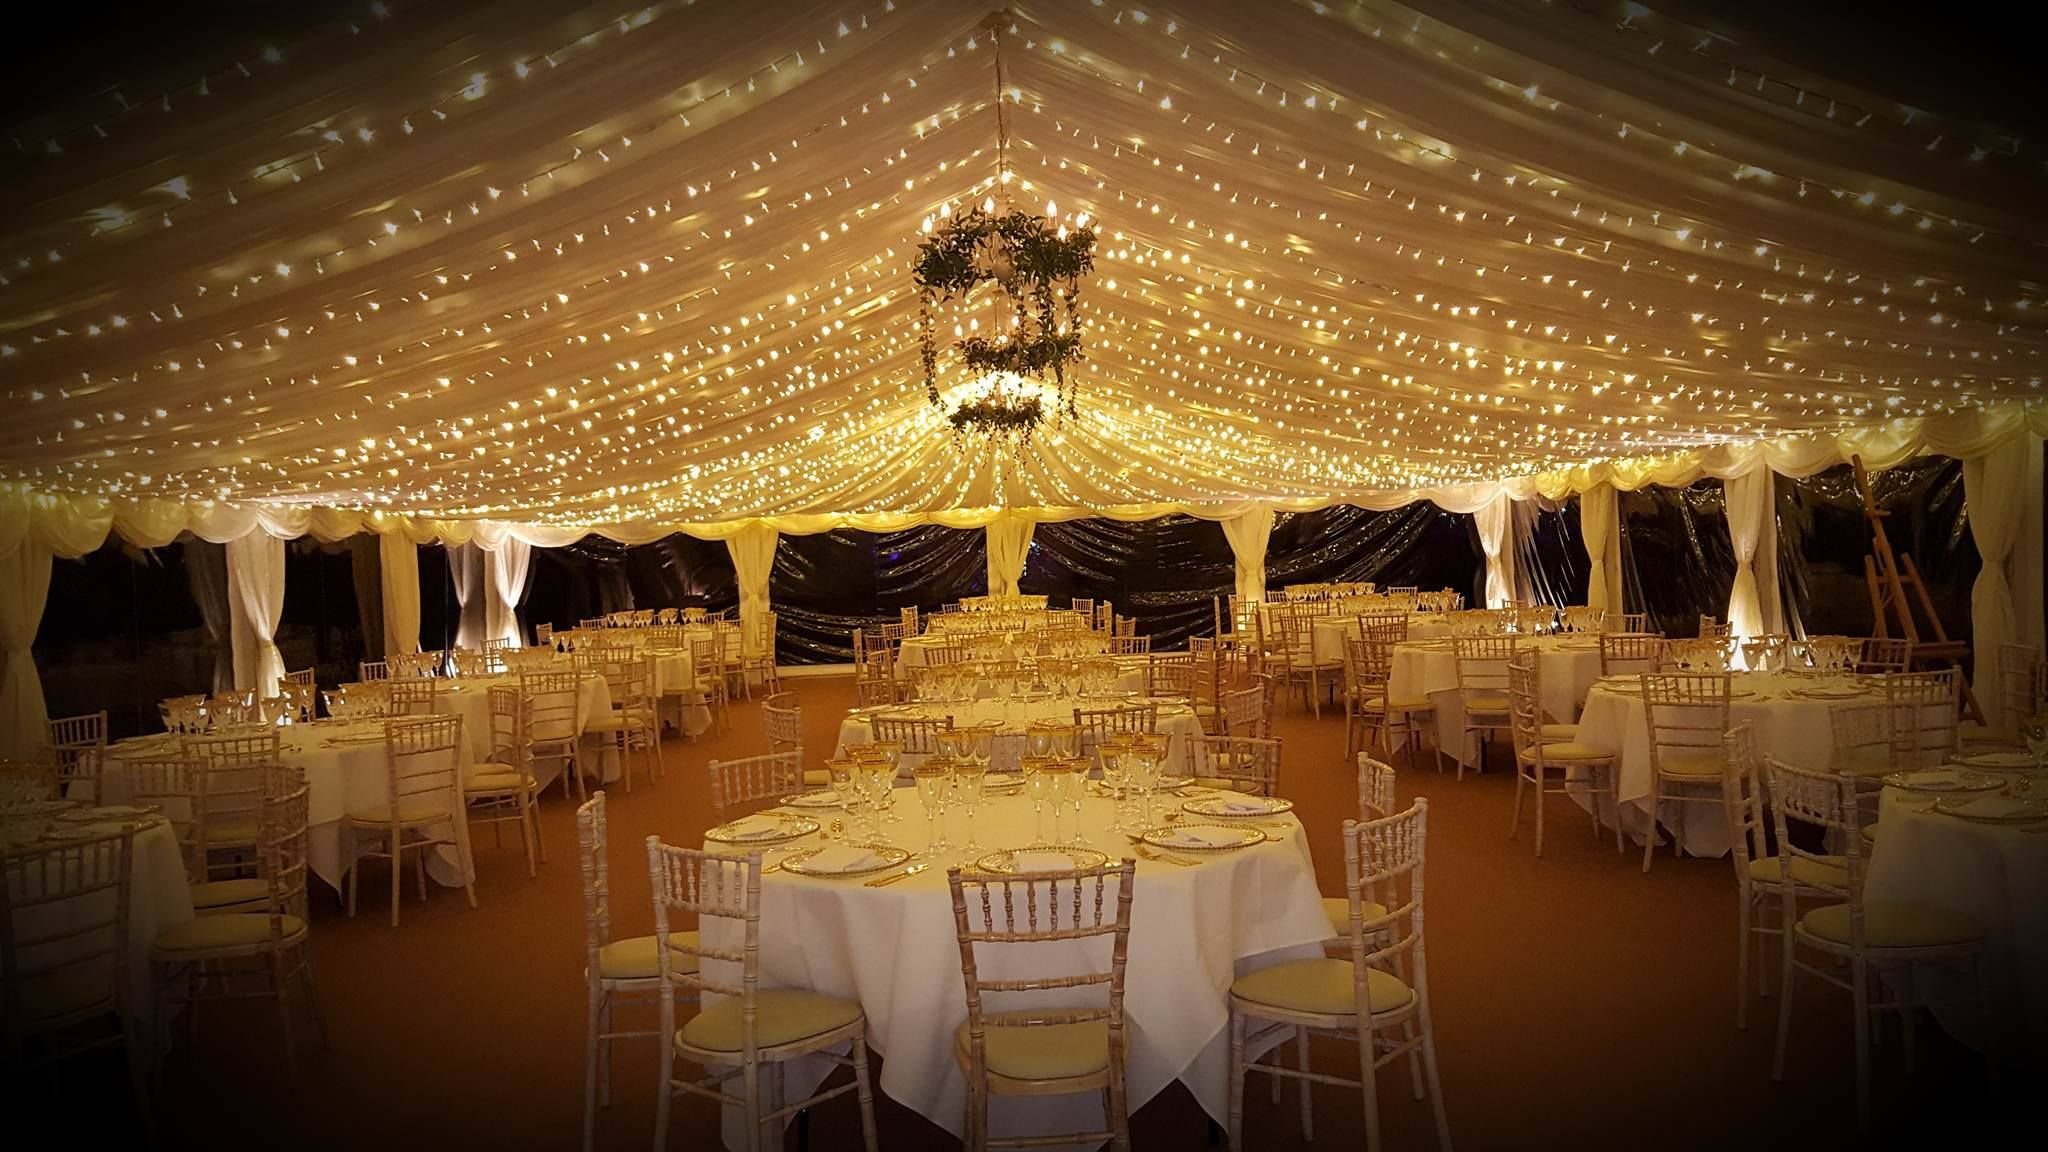 Our very own lakeside marquee with fairy light ceiling provided by Visually Sound